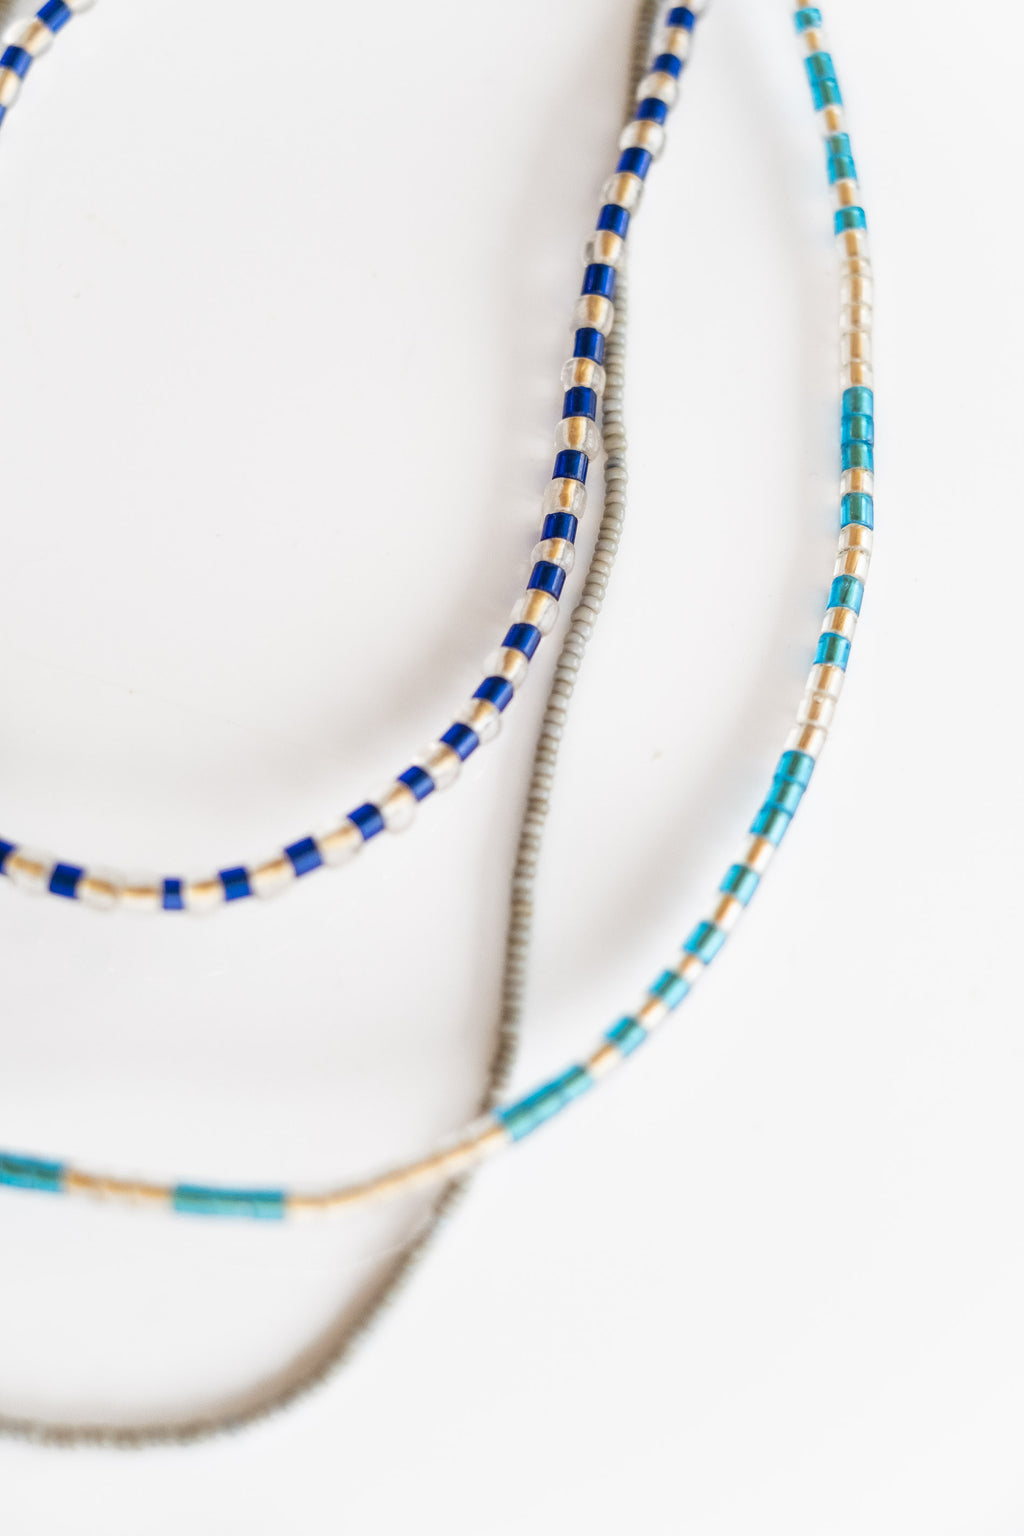 3-STRAND AFRICAN BEADS NO. 2